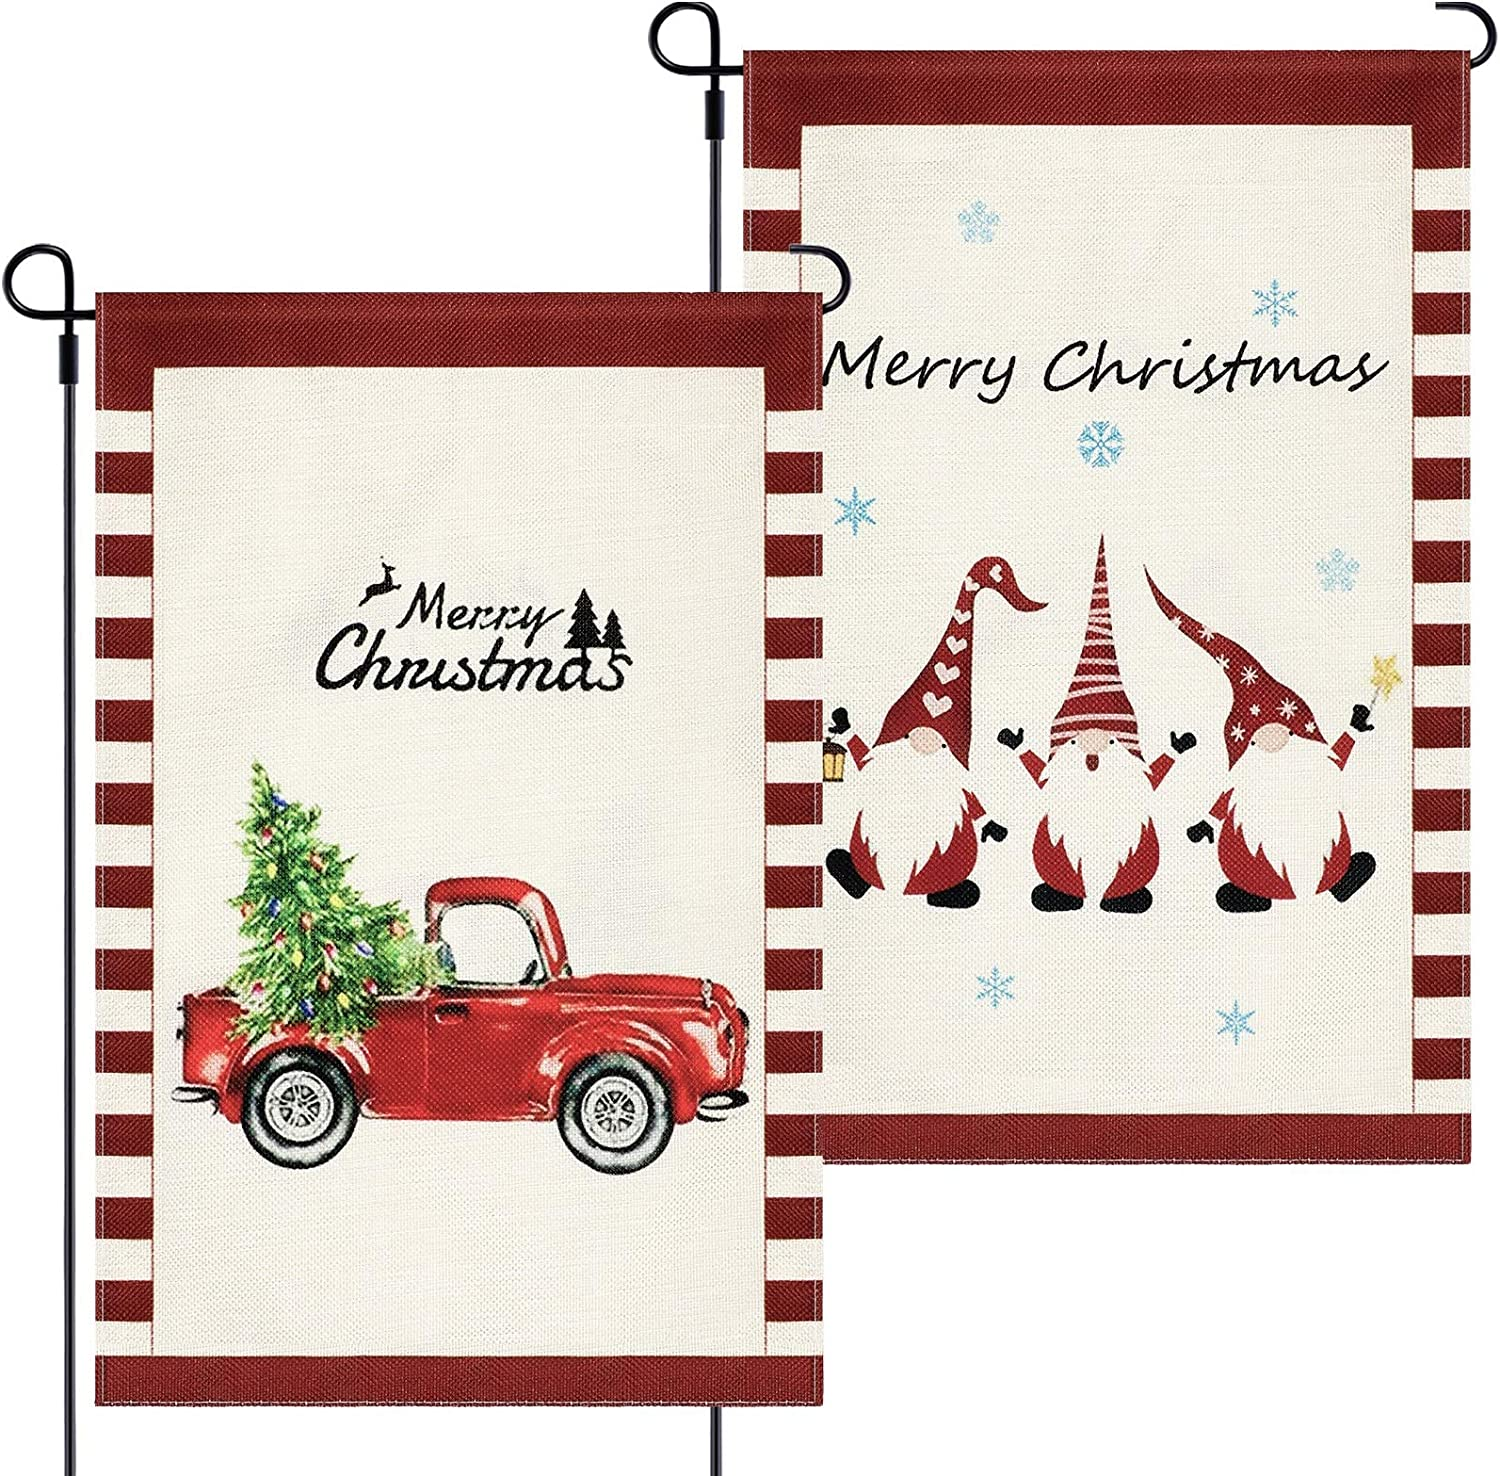 2 Pieces Christmas Garden Flag Double Sided Christmas Yard Flag Xmas Outdoor Flag Gnomes Red Truck Burlap Yard Winter Flag for Yard Garden Outdoor Christmas Decoration, 12 x 18 Inch